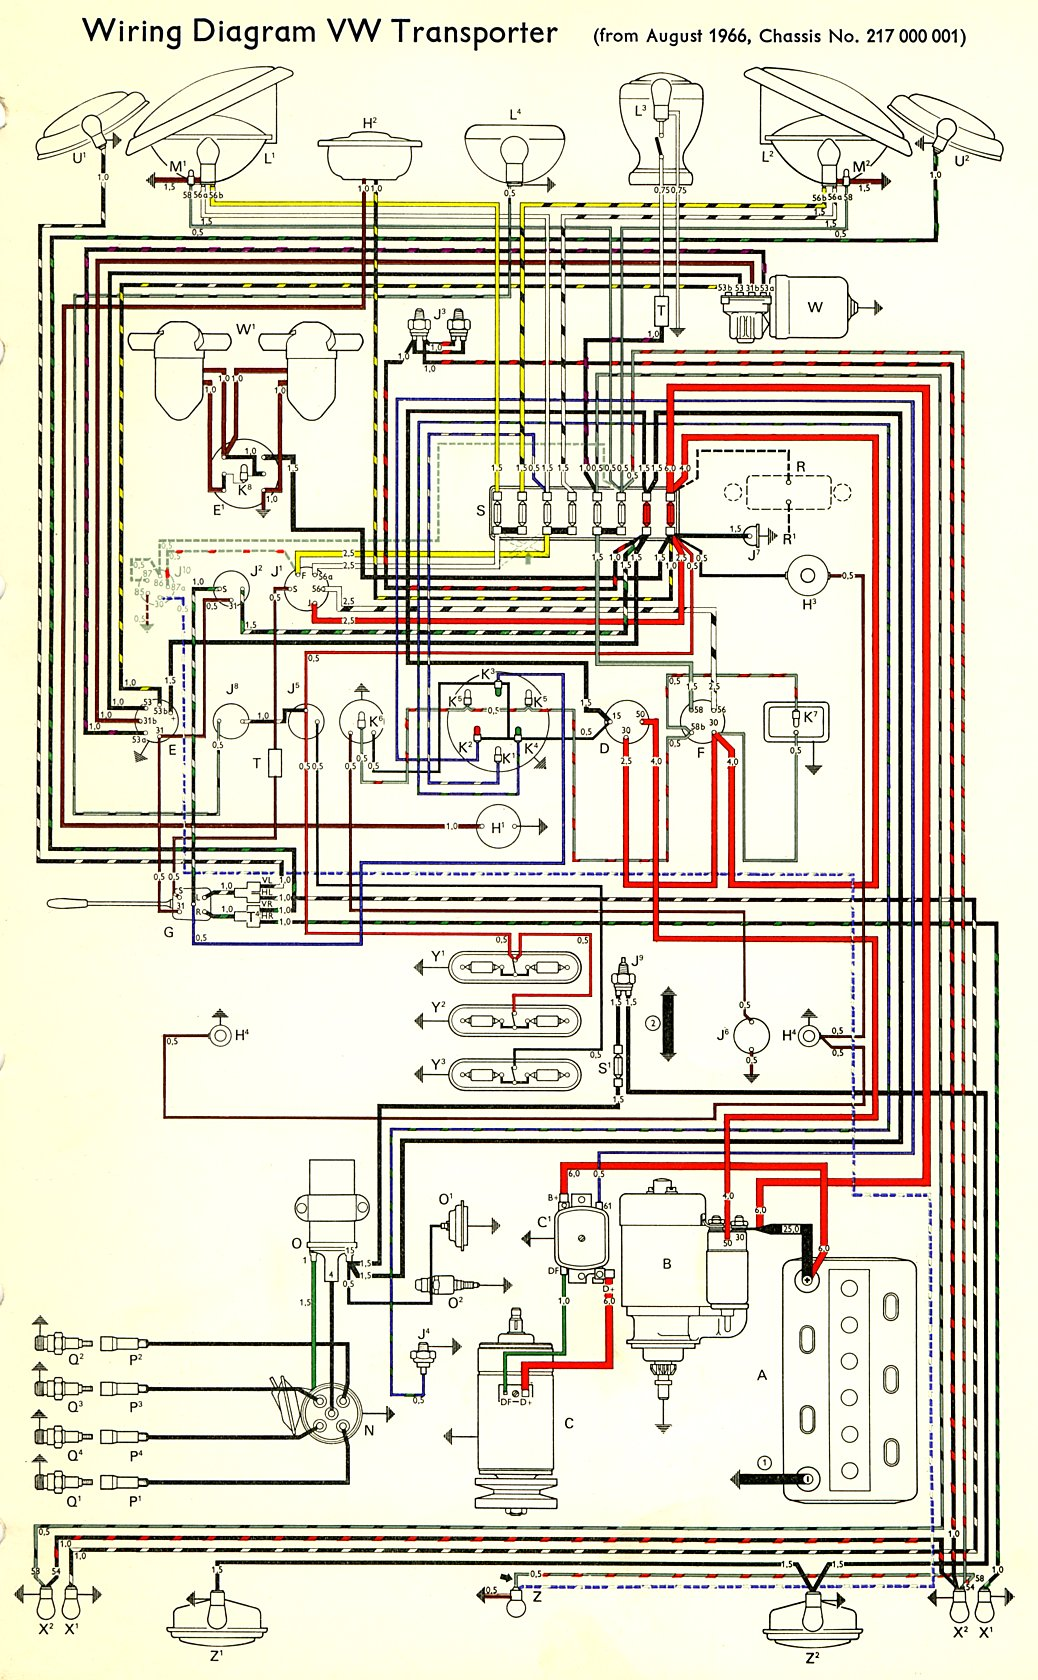 bus_67 67 vw bus wiring harness 71 vw wiring harness \u2022 wiring diagrams 1965 vw beetle wiring diagram at edmiracle.co